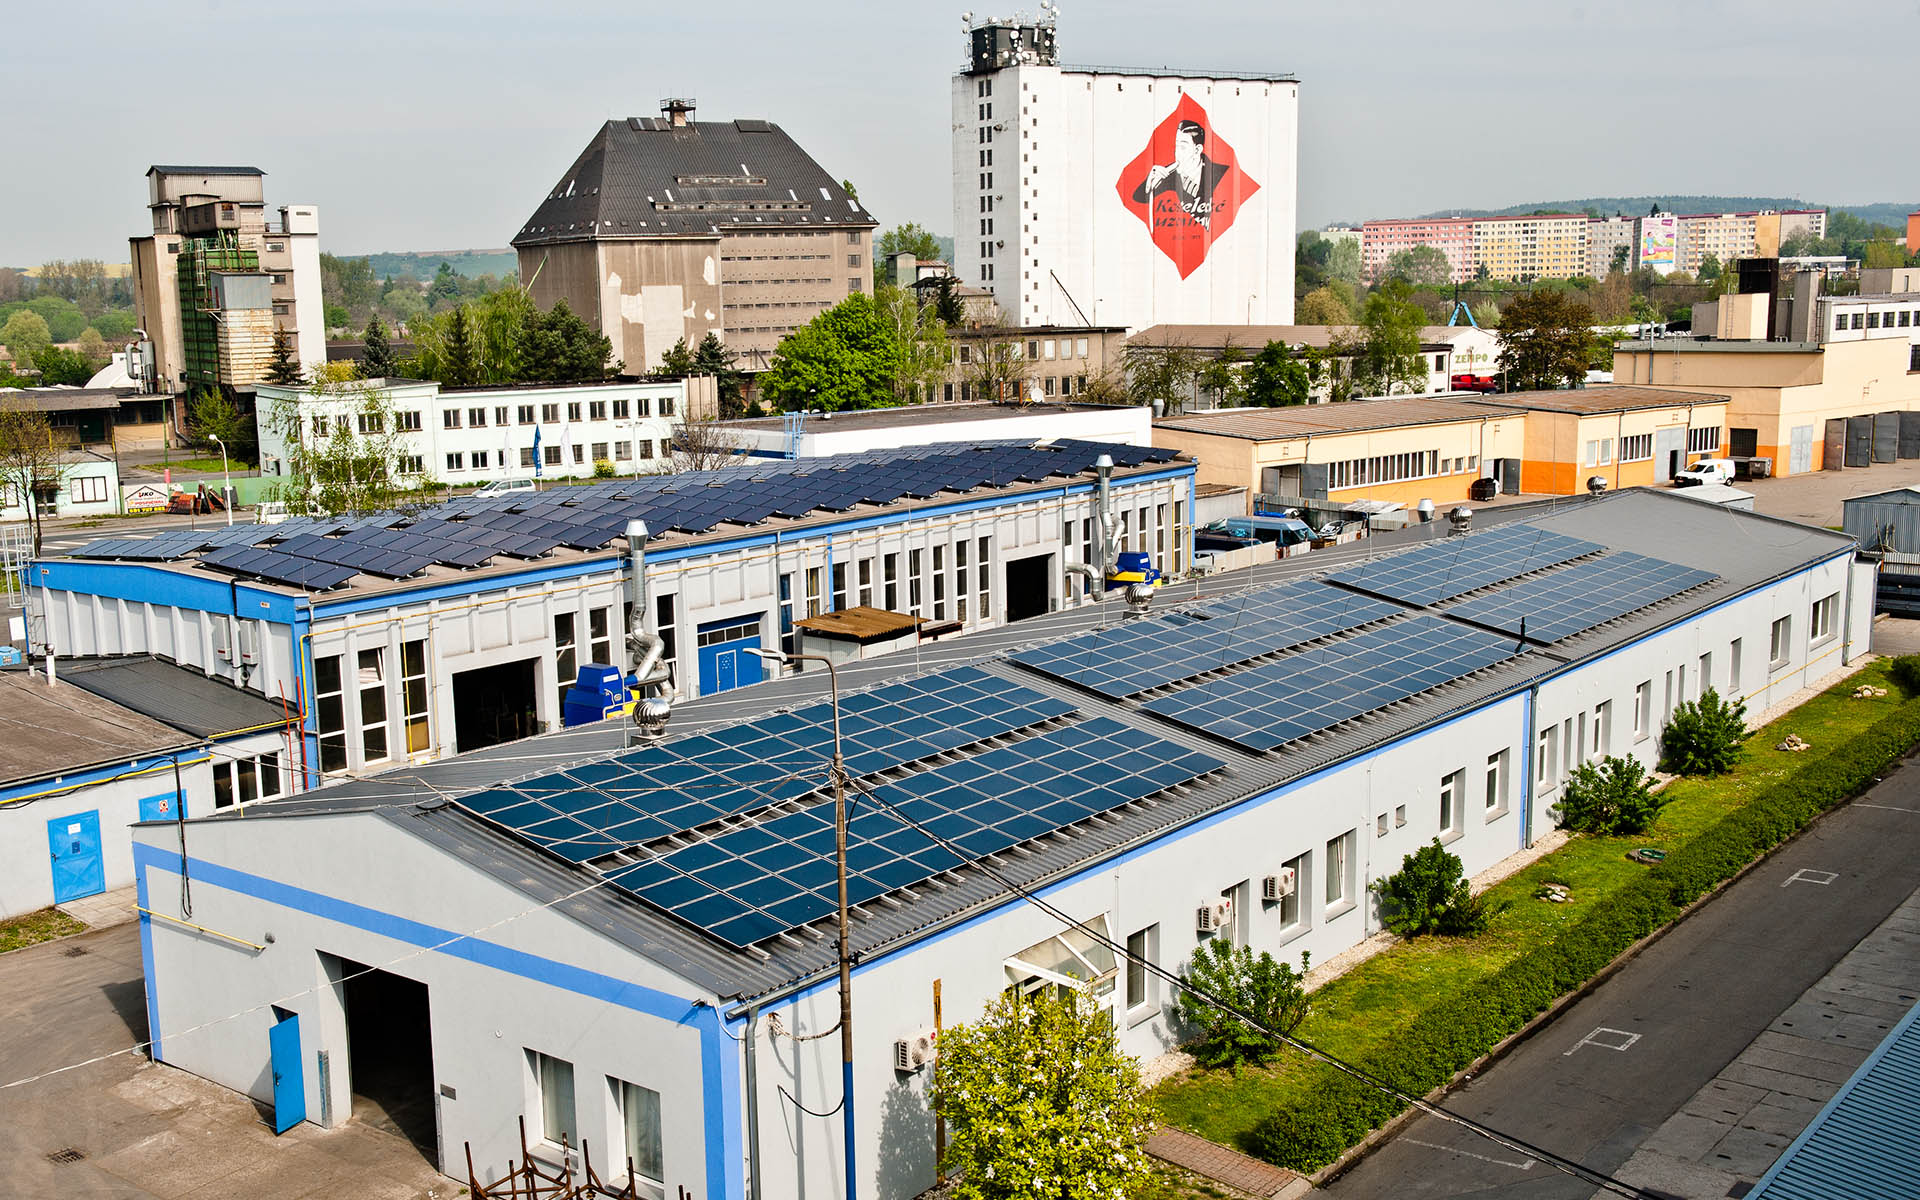 Industrial area, Prerov. Installation of photovoltaic power plants with an output of 90 kWp.